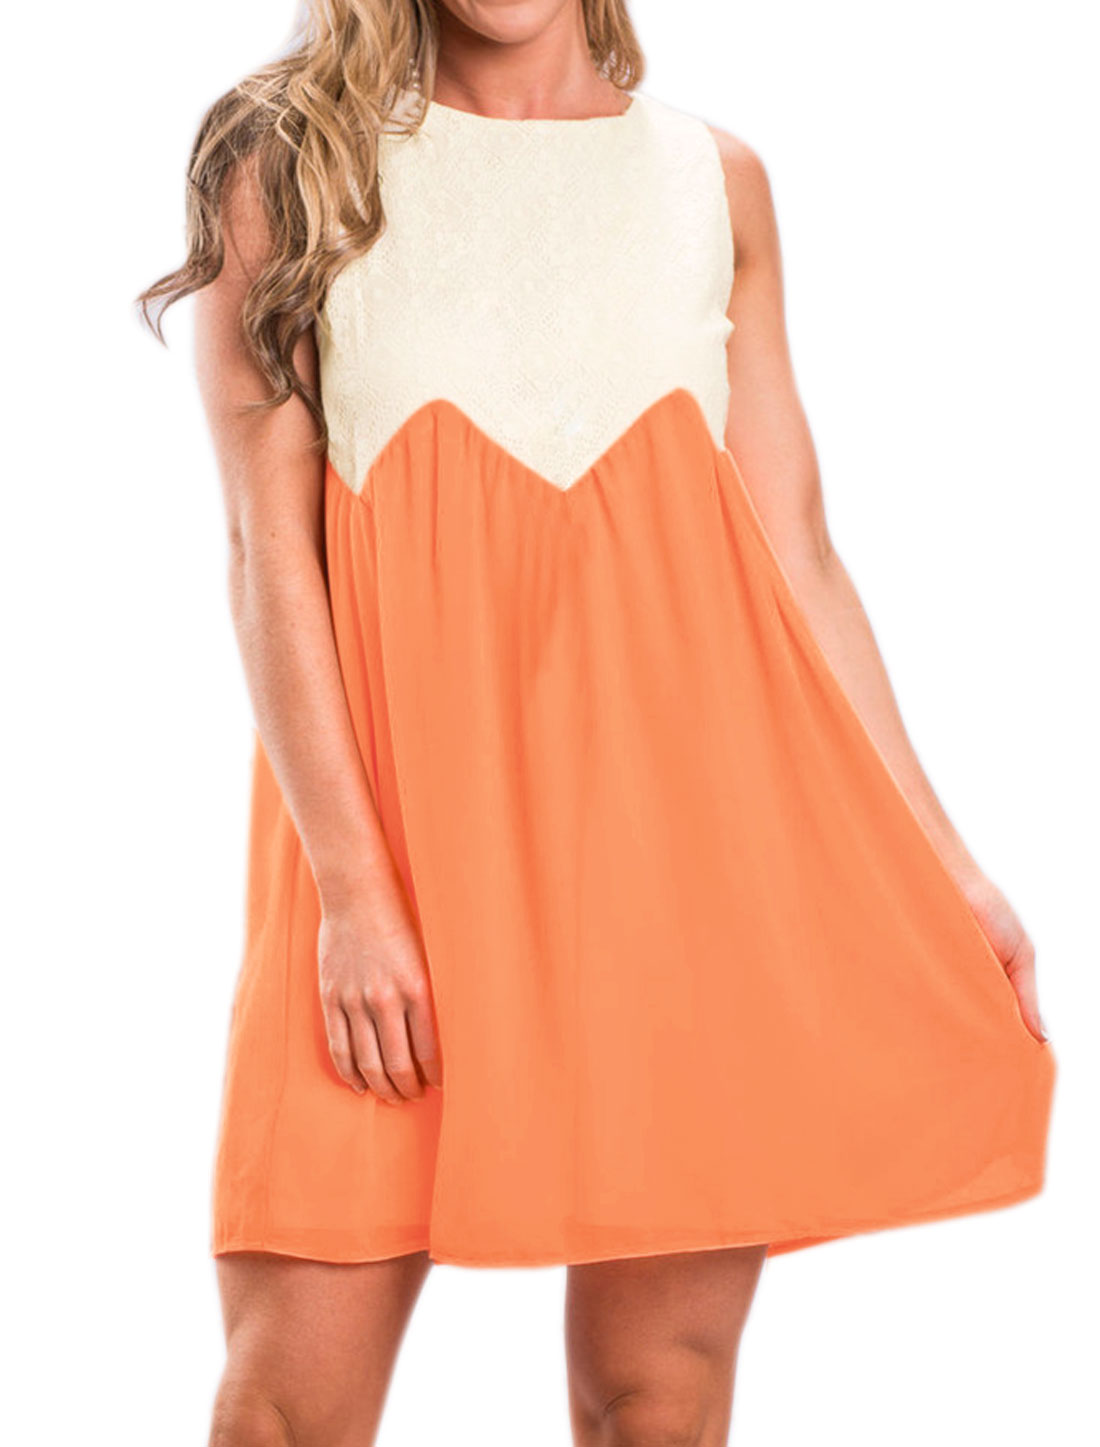 Women Lace Panel Contrast Color Sleeveless Chiffon Babydoll Dress Orange M